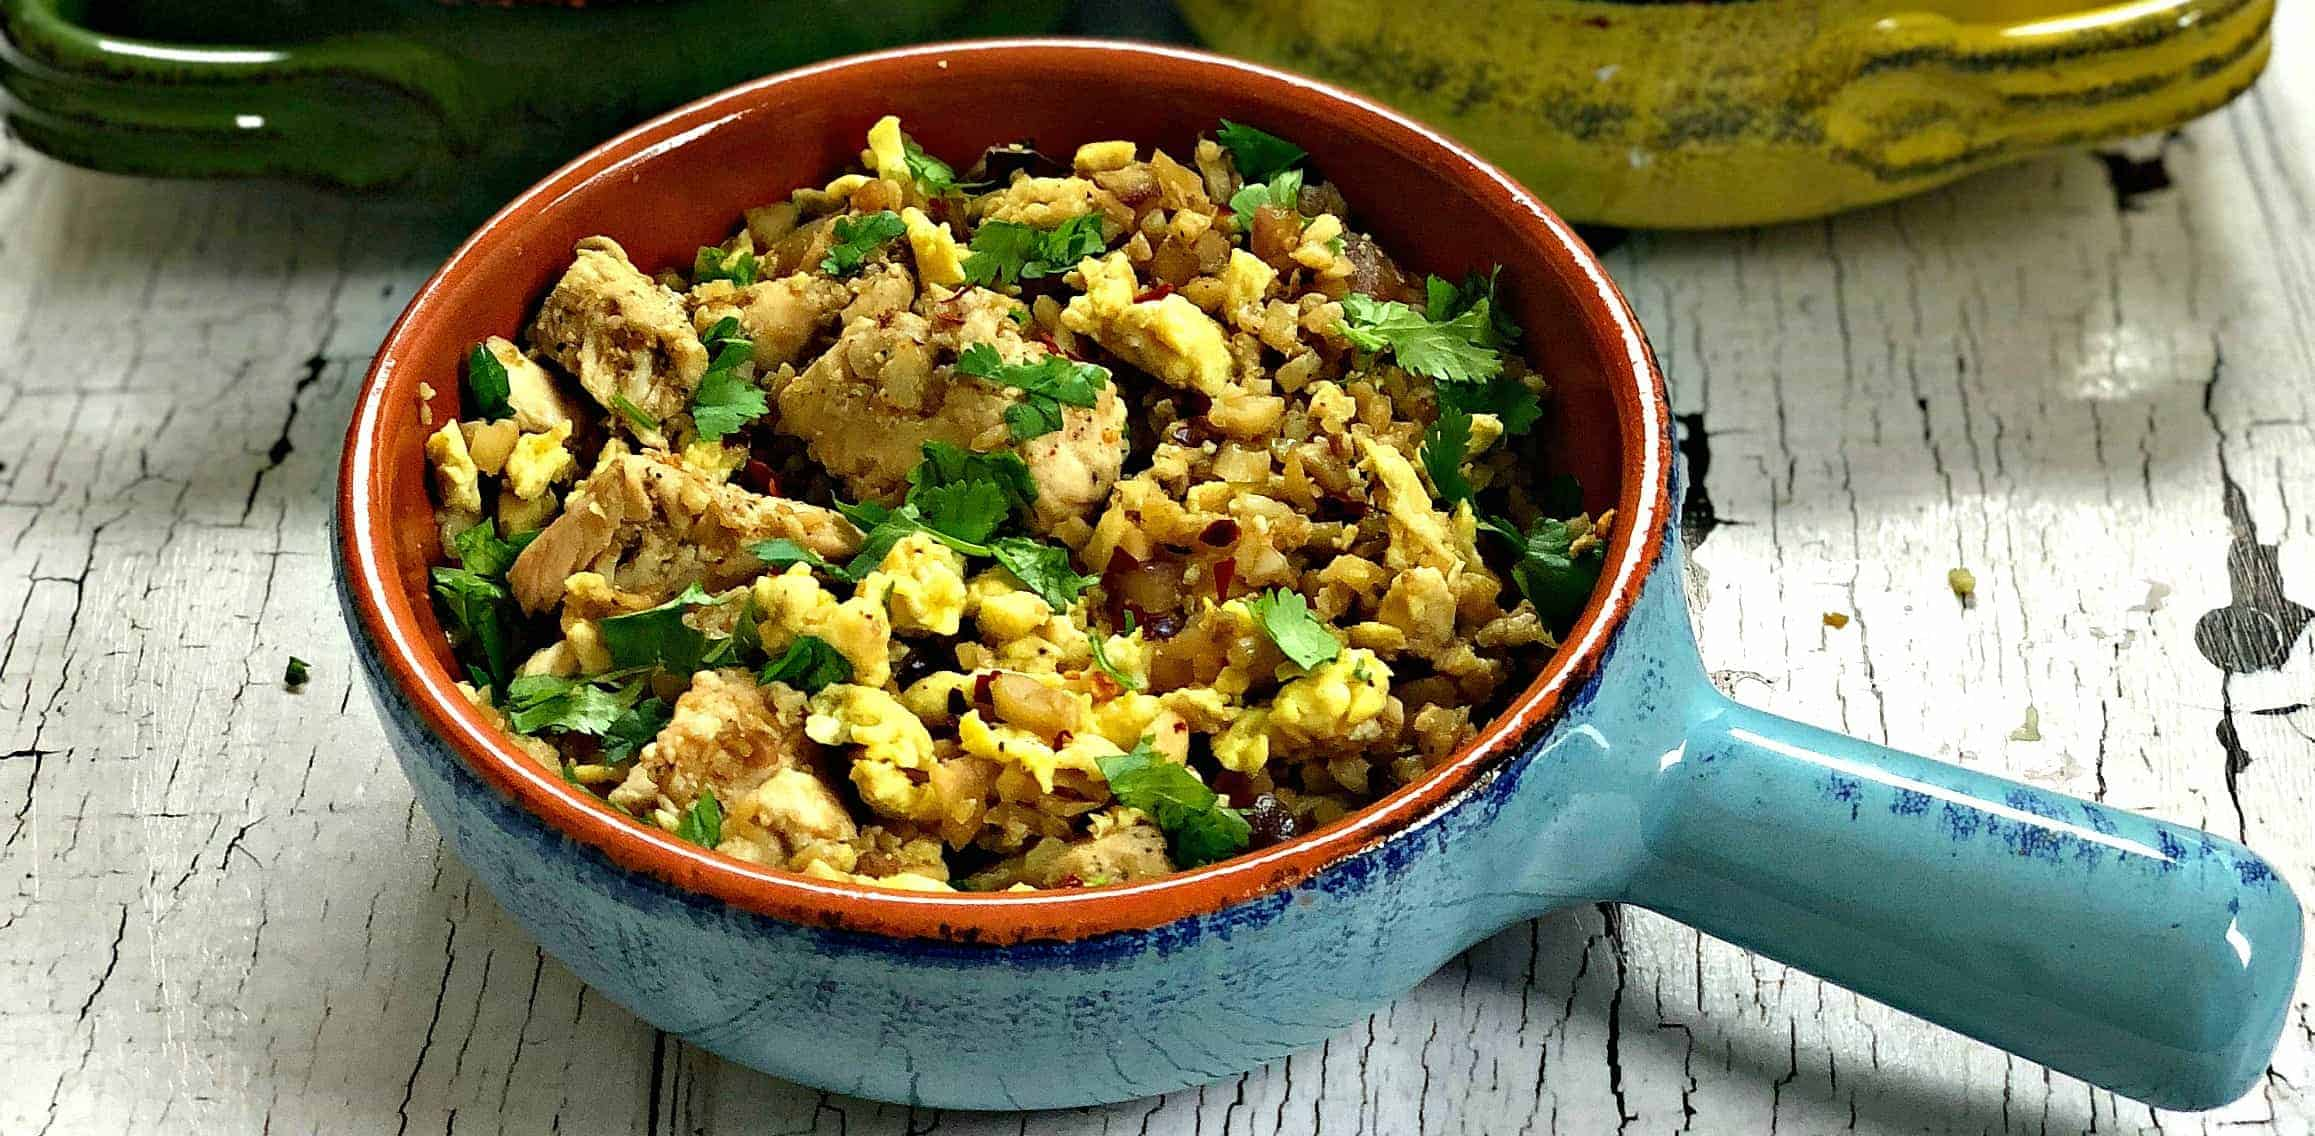 Low-Carb Paleo Cauliflower Vegetable Fried Rice with Chicken in a serving dish